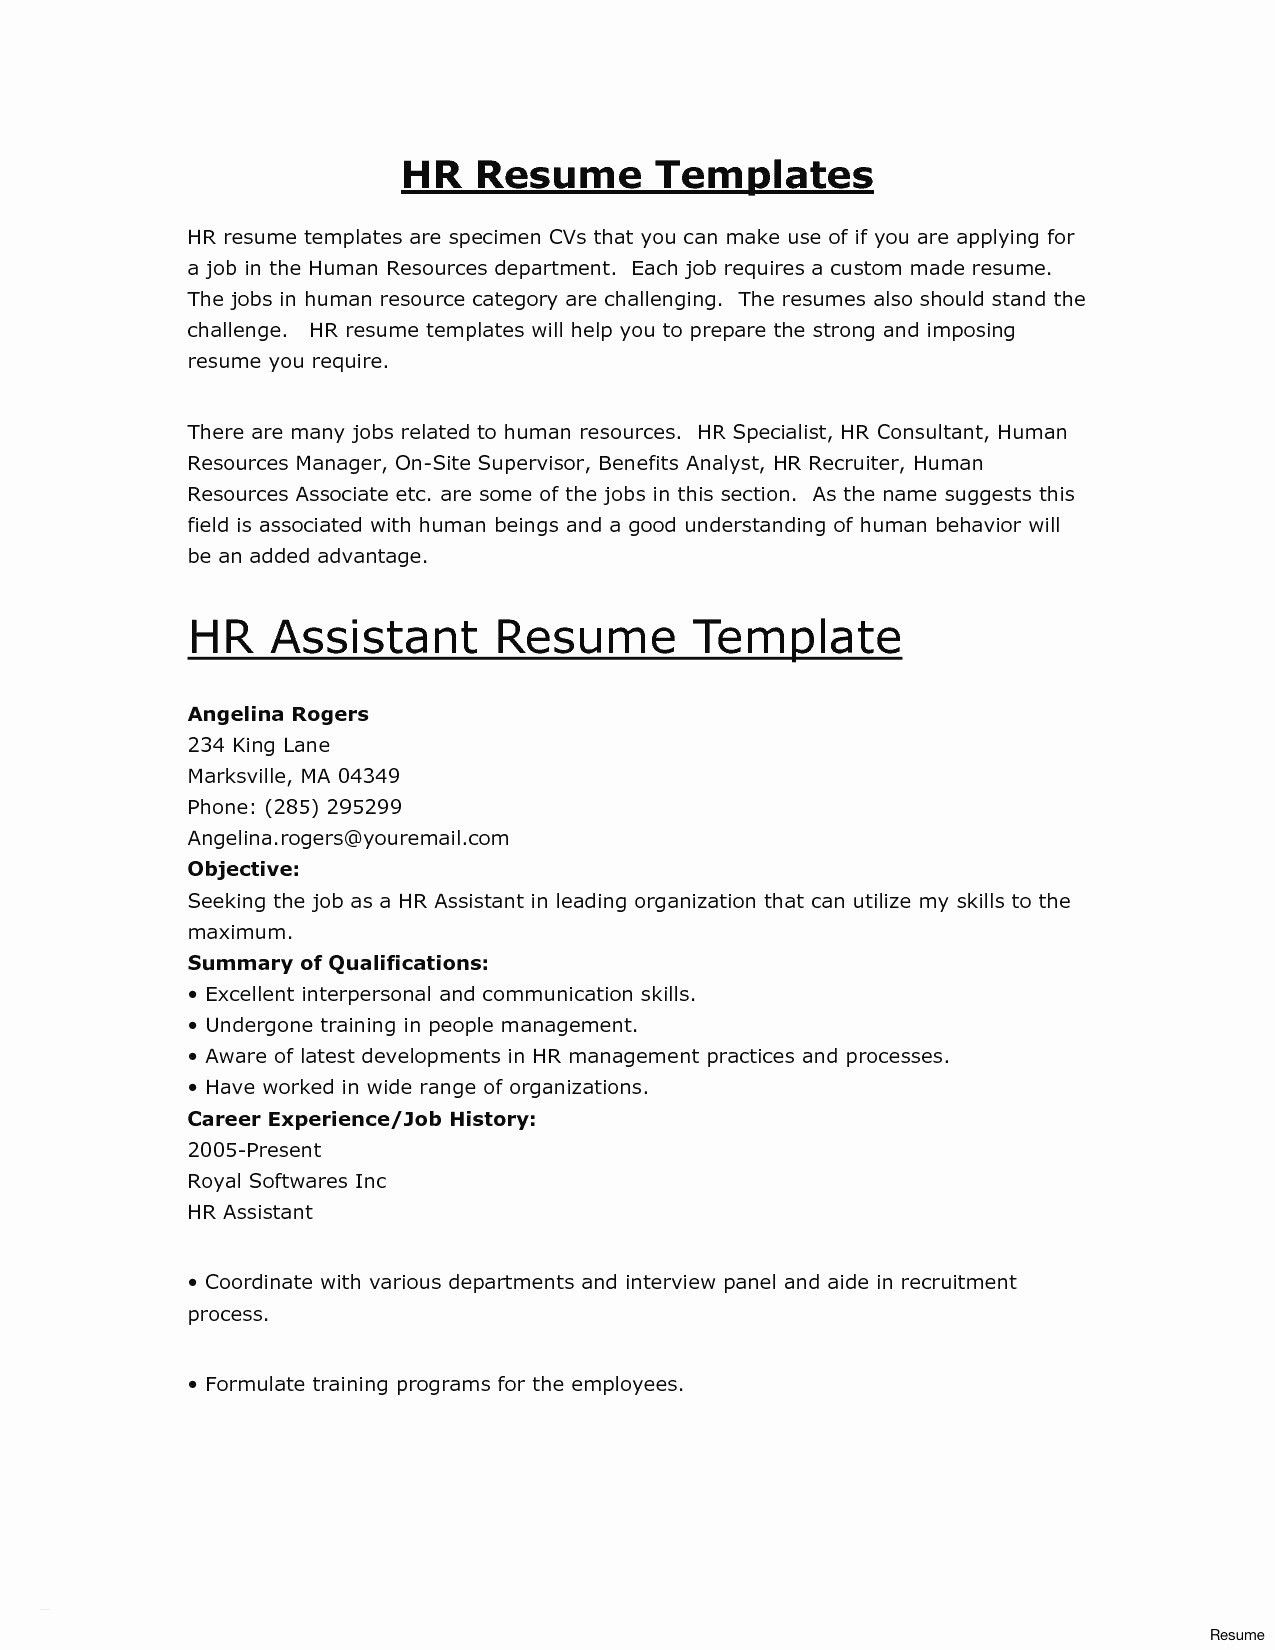 Human Resources Resume Template - Download Luxury Word 2013 Resume Templates